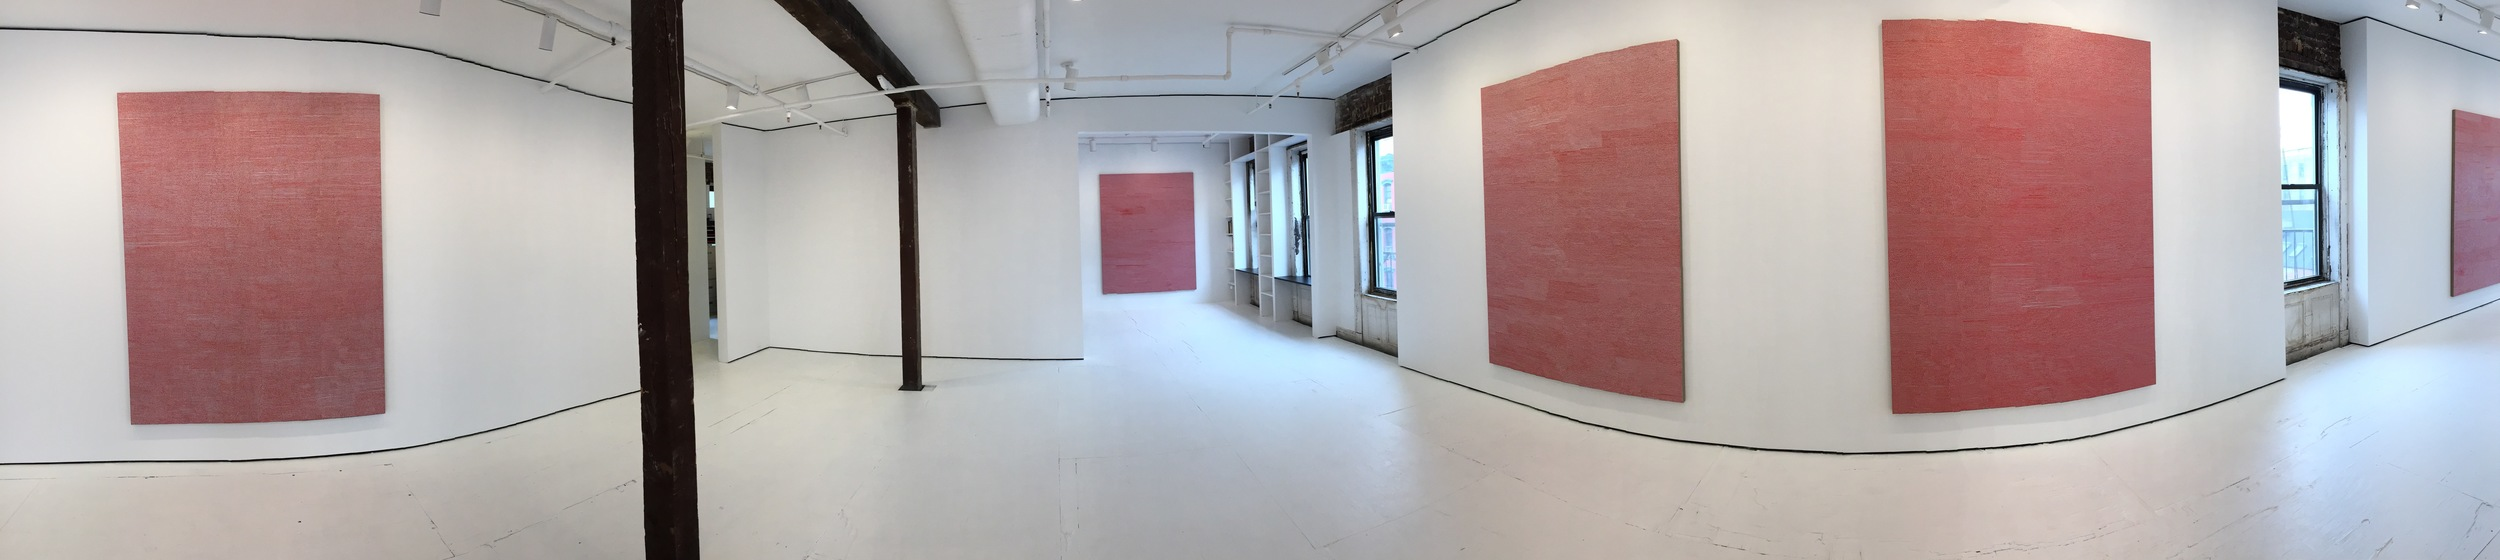 Exhibition Image,  Jennifer Guidi , Nathalie Karg, New York Photo Credit: Cincala Art Advisory